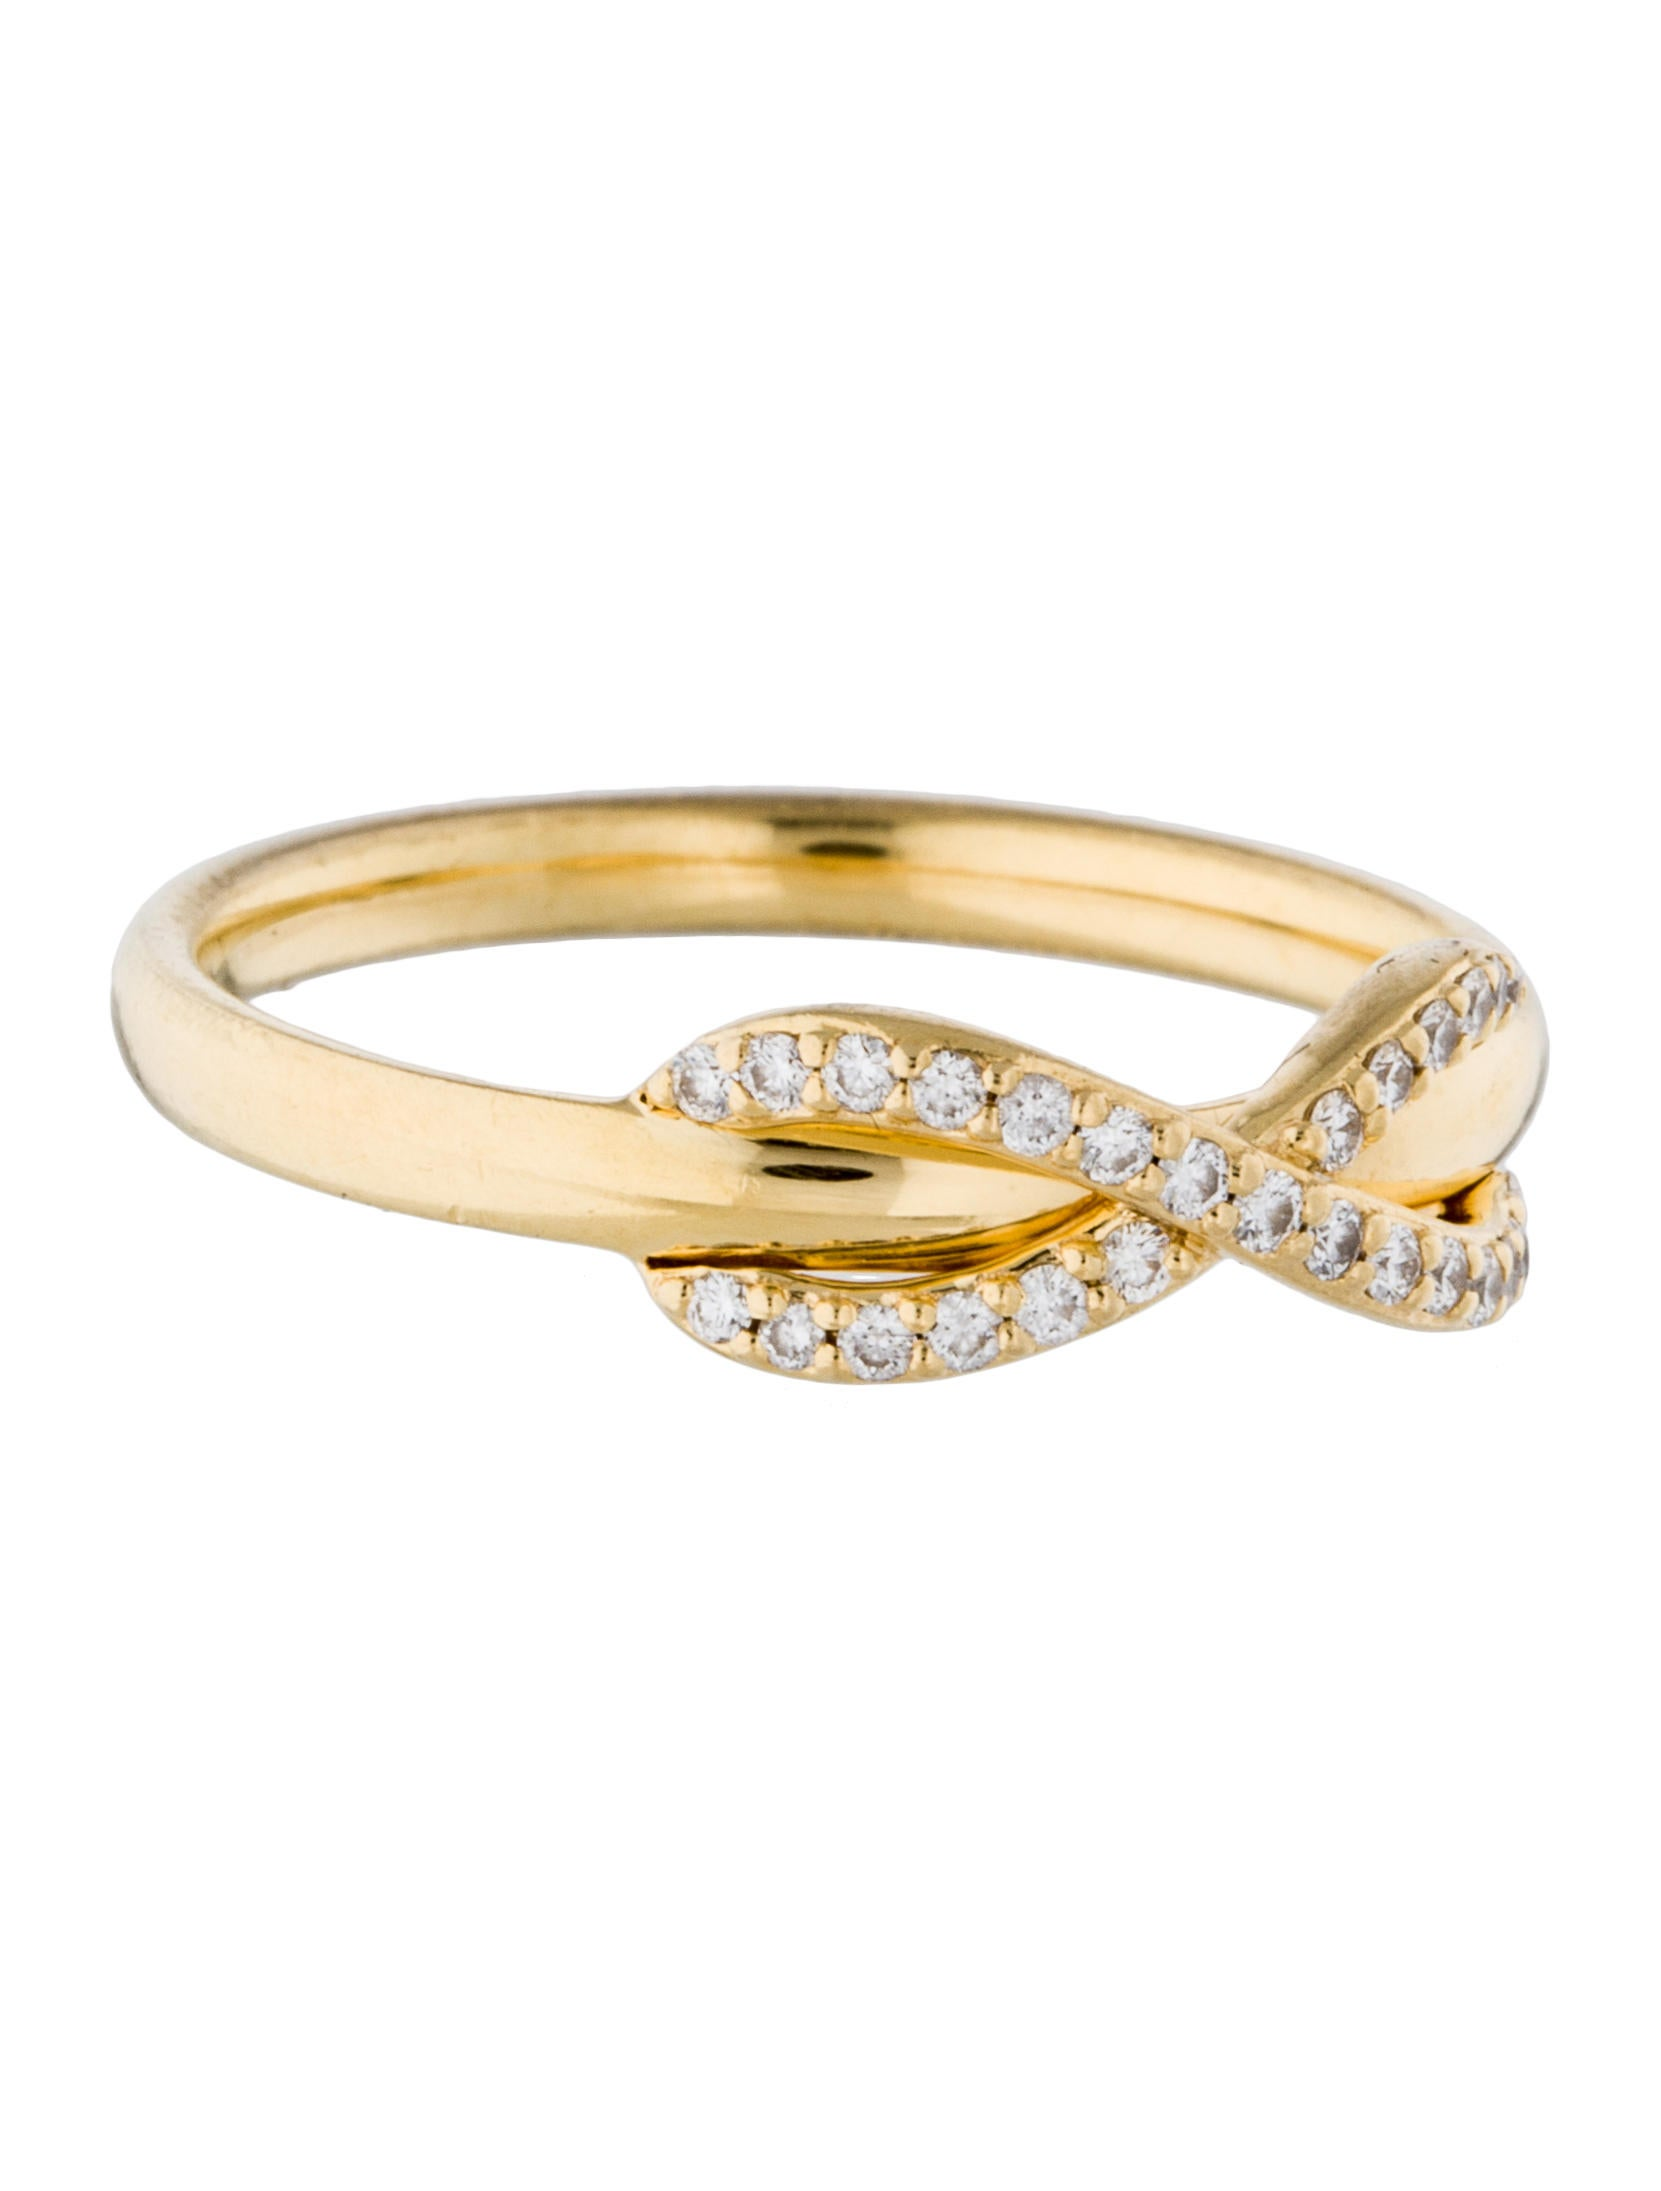 c0c2f35f7 Tiffany & Co. 18K Diamond Infinity Ring - Rings - TIF45536 | The ...